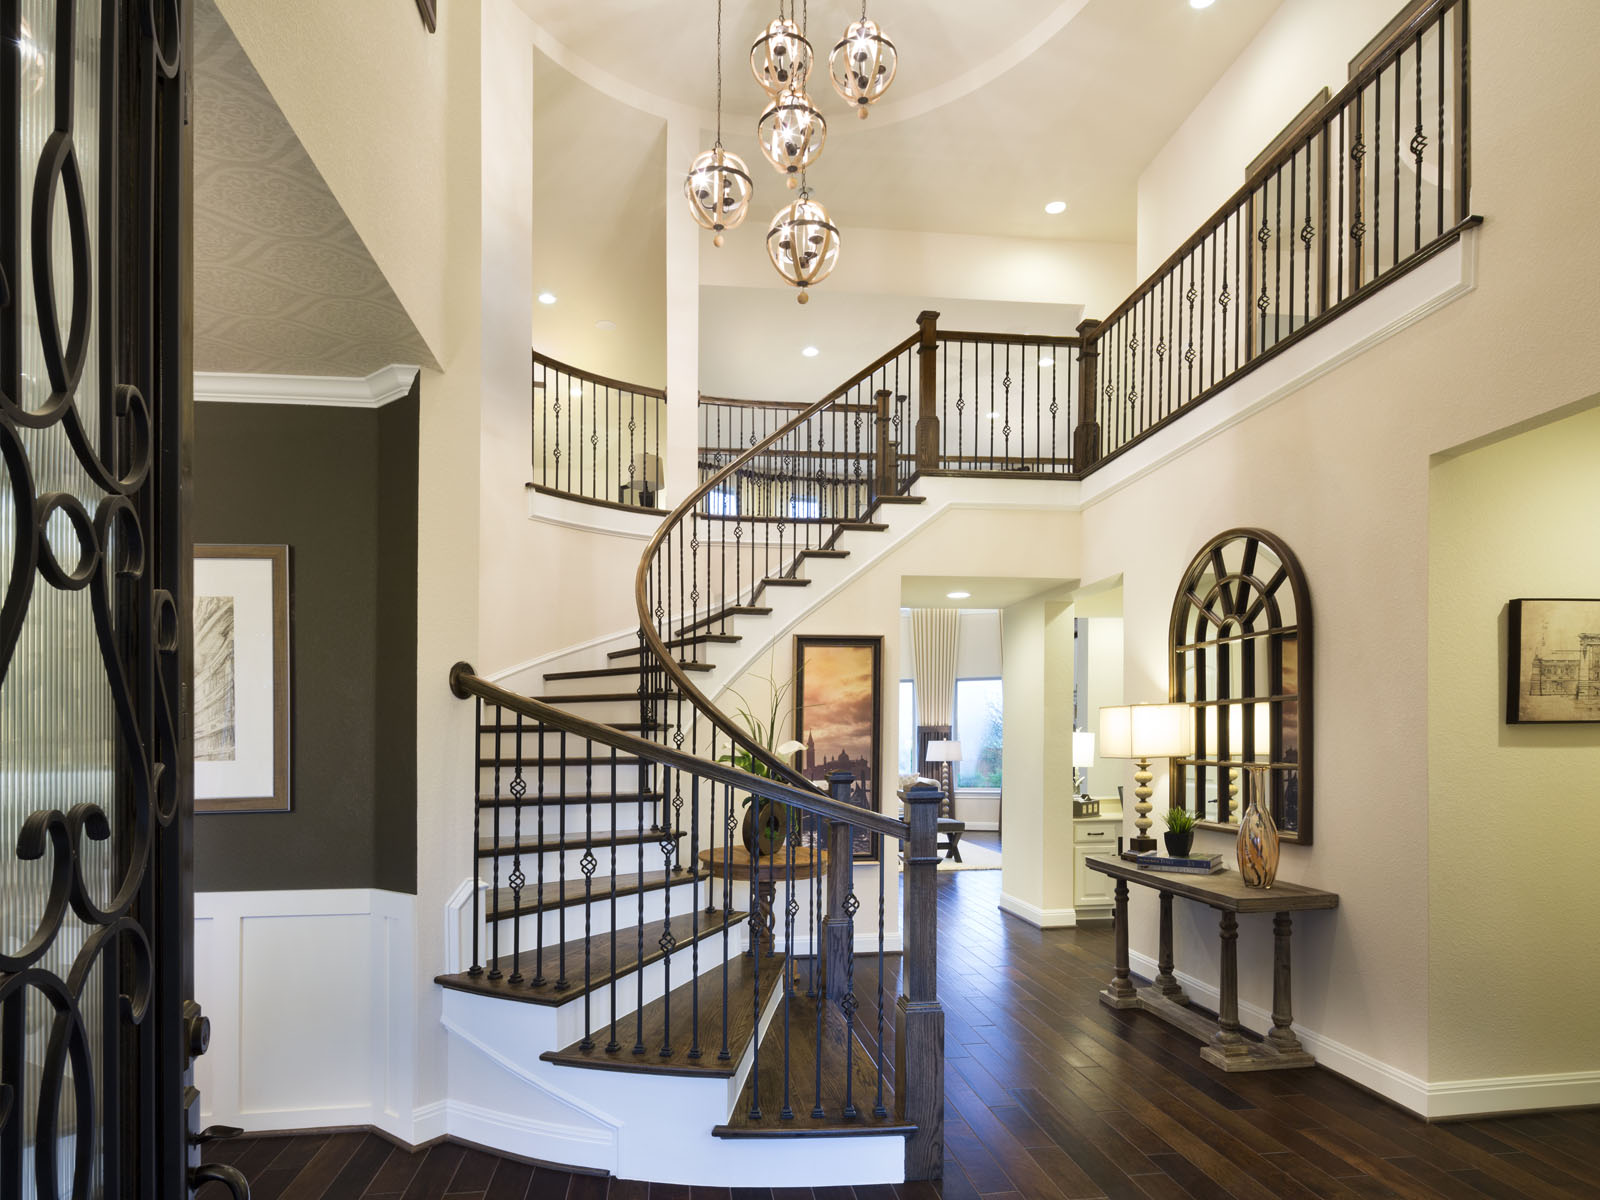 This foyer will WOW your guest